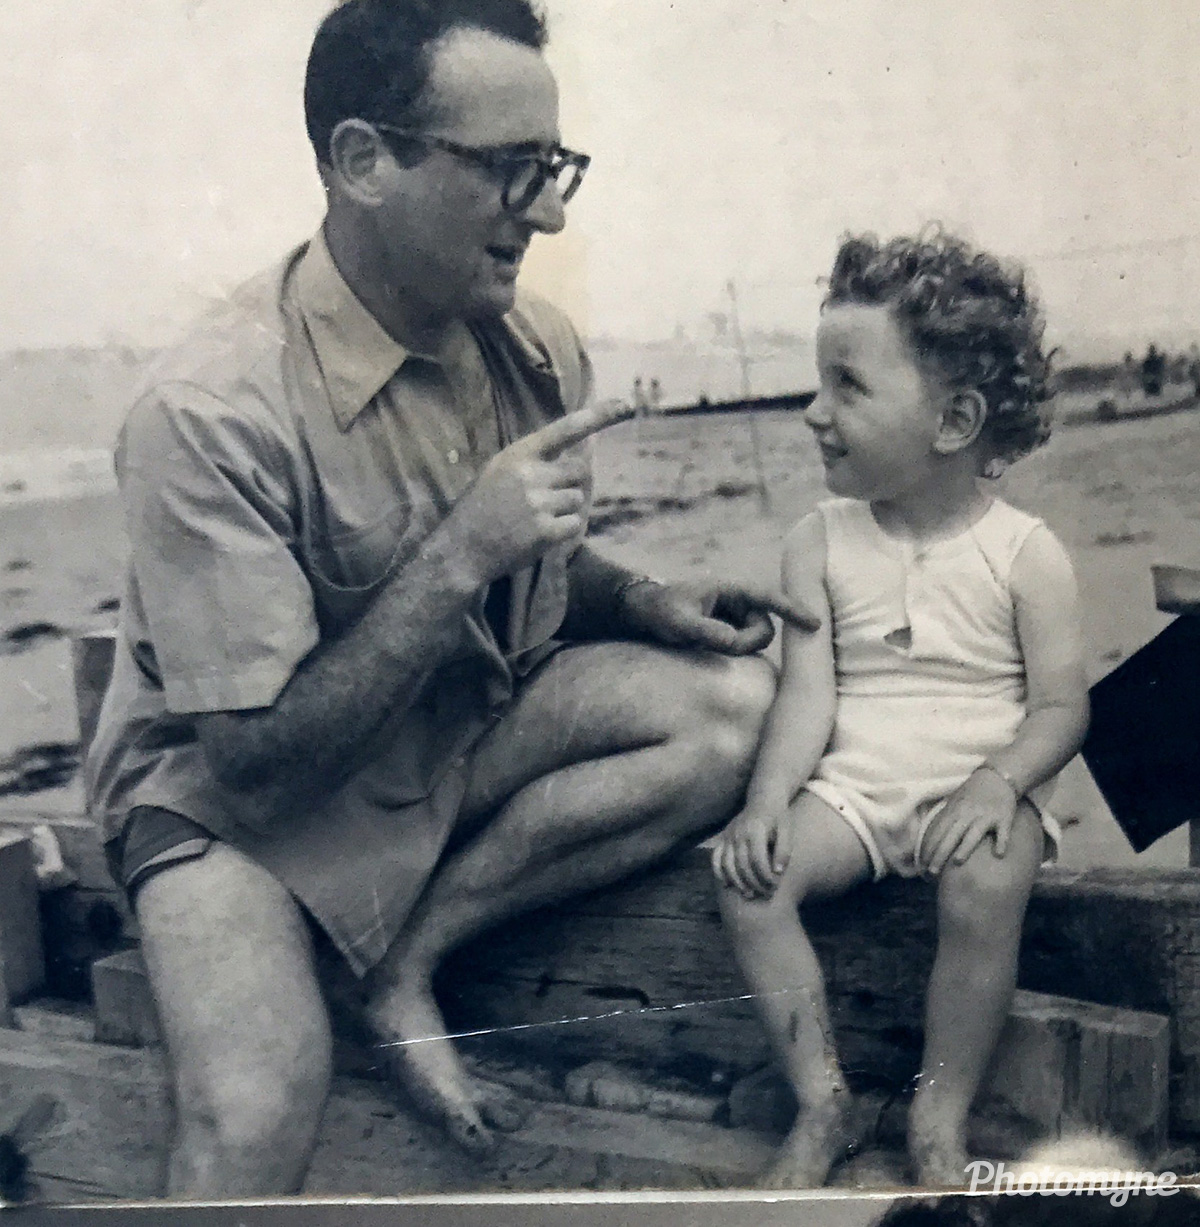 Papa et son fiston (Dad and his son), France, 1957